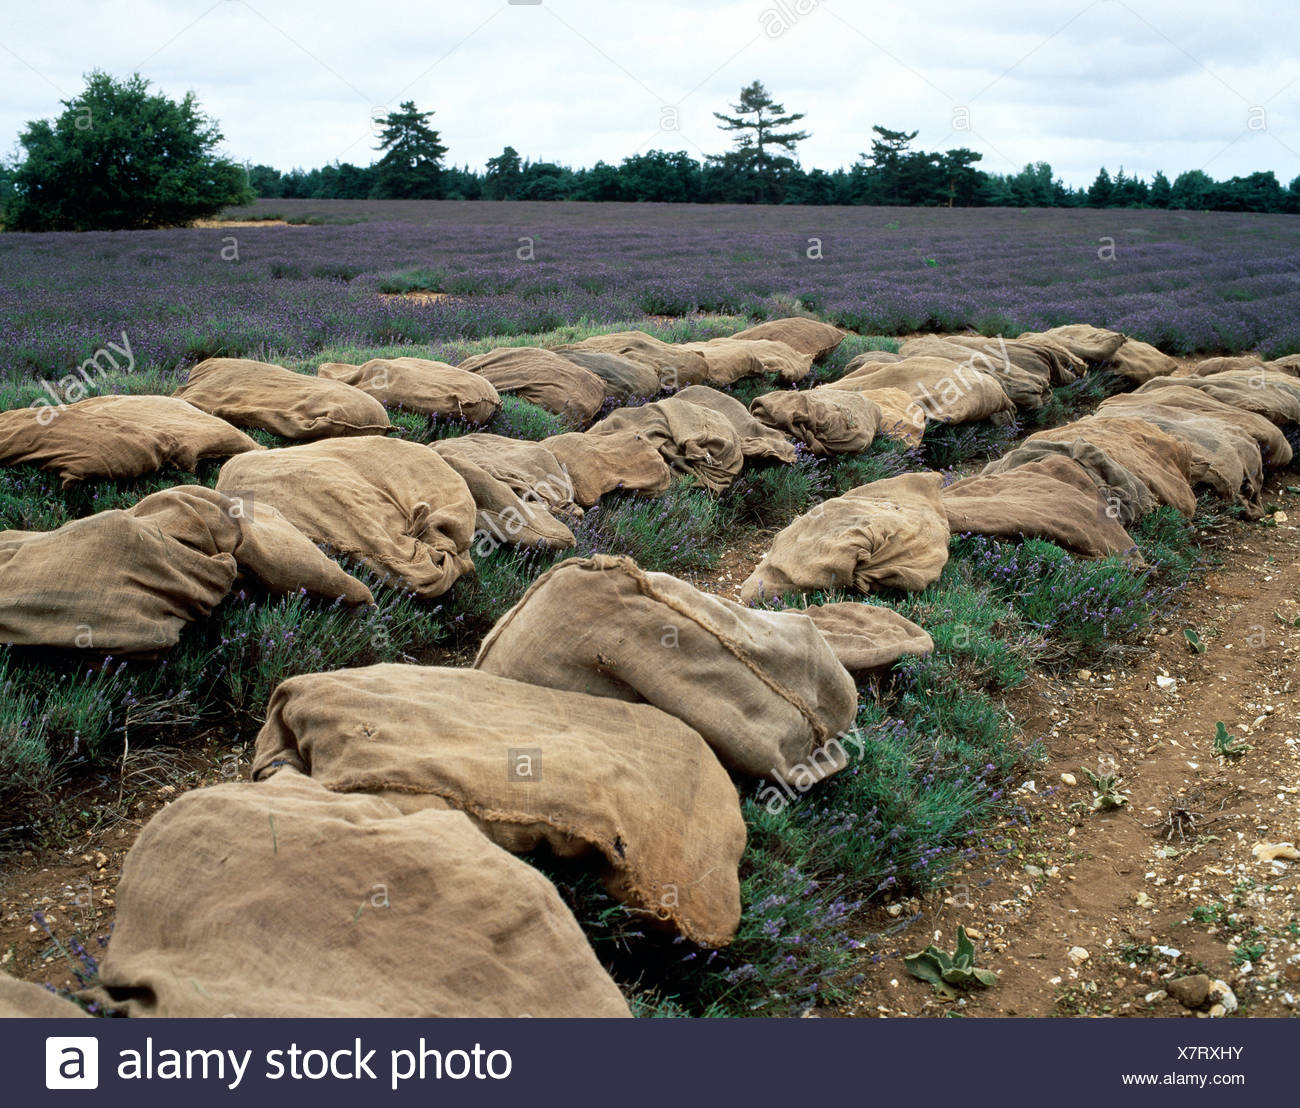 Norfolk Lavender Rows of lavender and canvas sacks in field - Stock Image